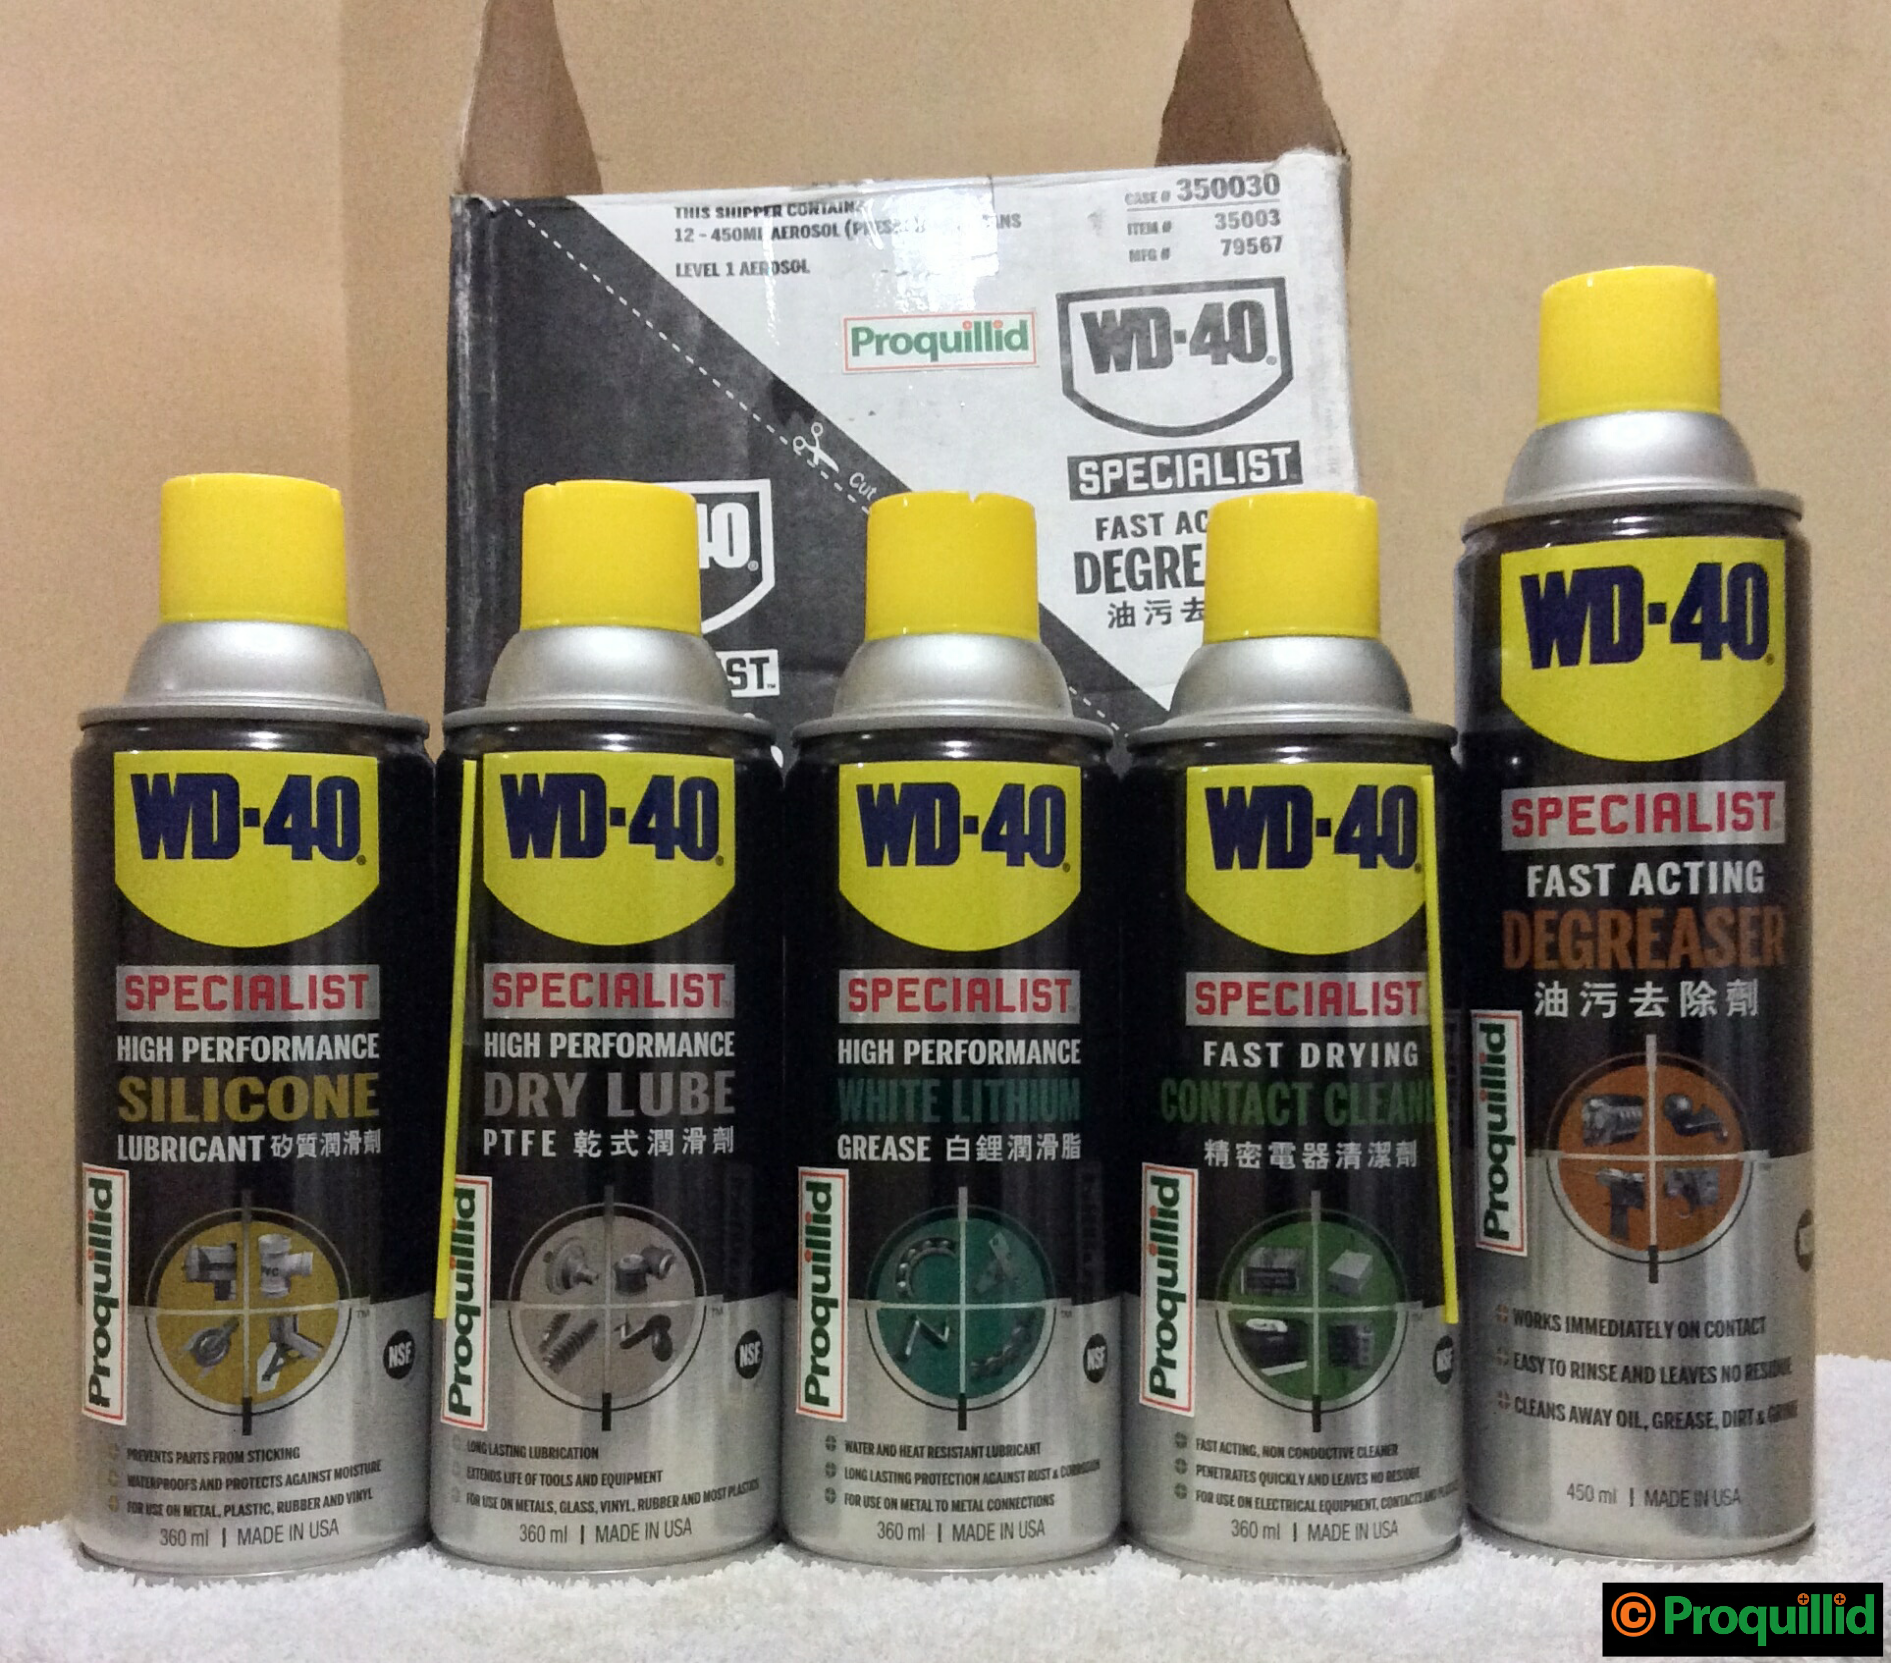 High Performance Silicone Lubricant 360 Ml High Performance Dry Lube Ptfe 360 Ml High Performance White Lithium Grease 360 Ml Proquillid Lube Wd 40